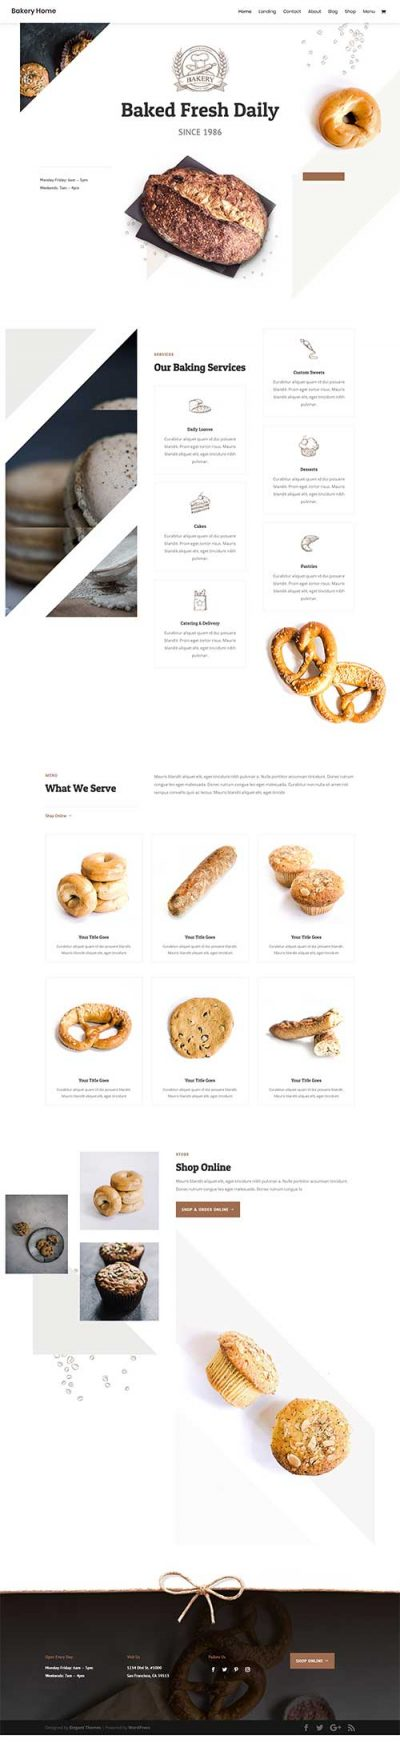 divi cake shop layout